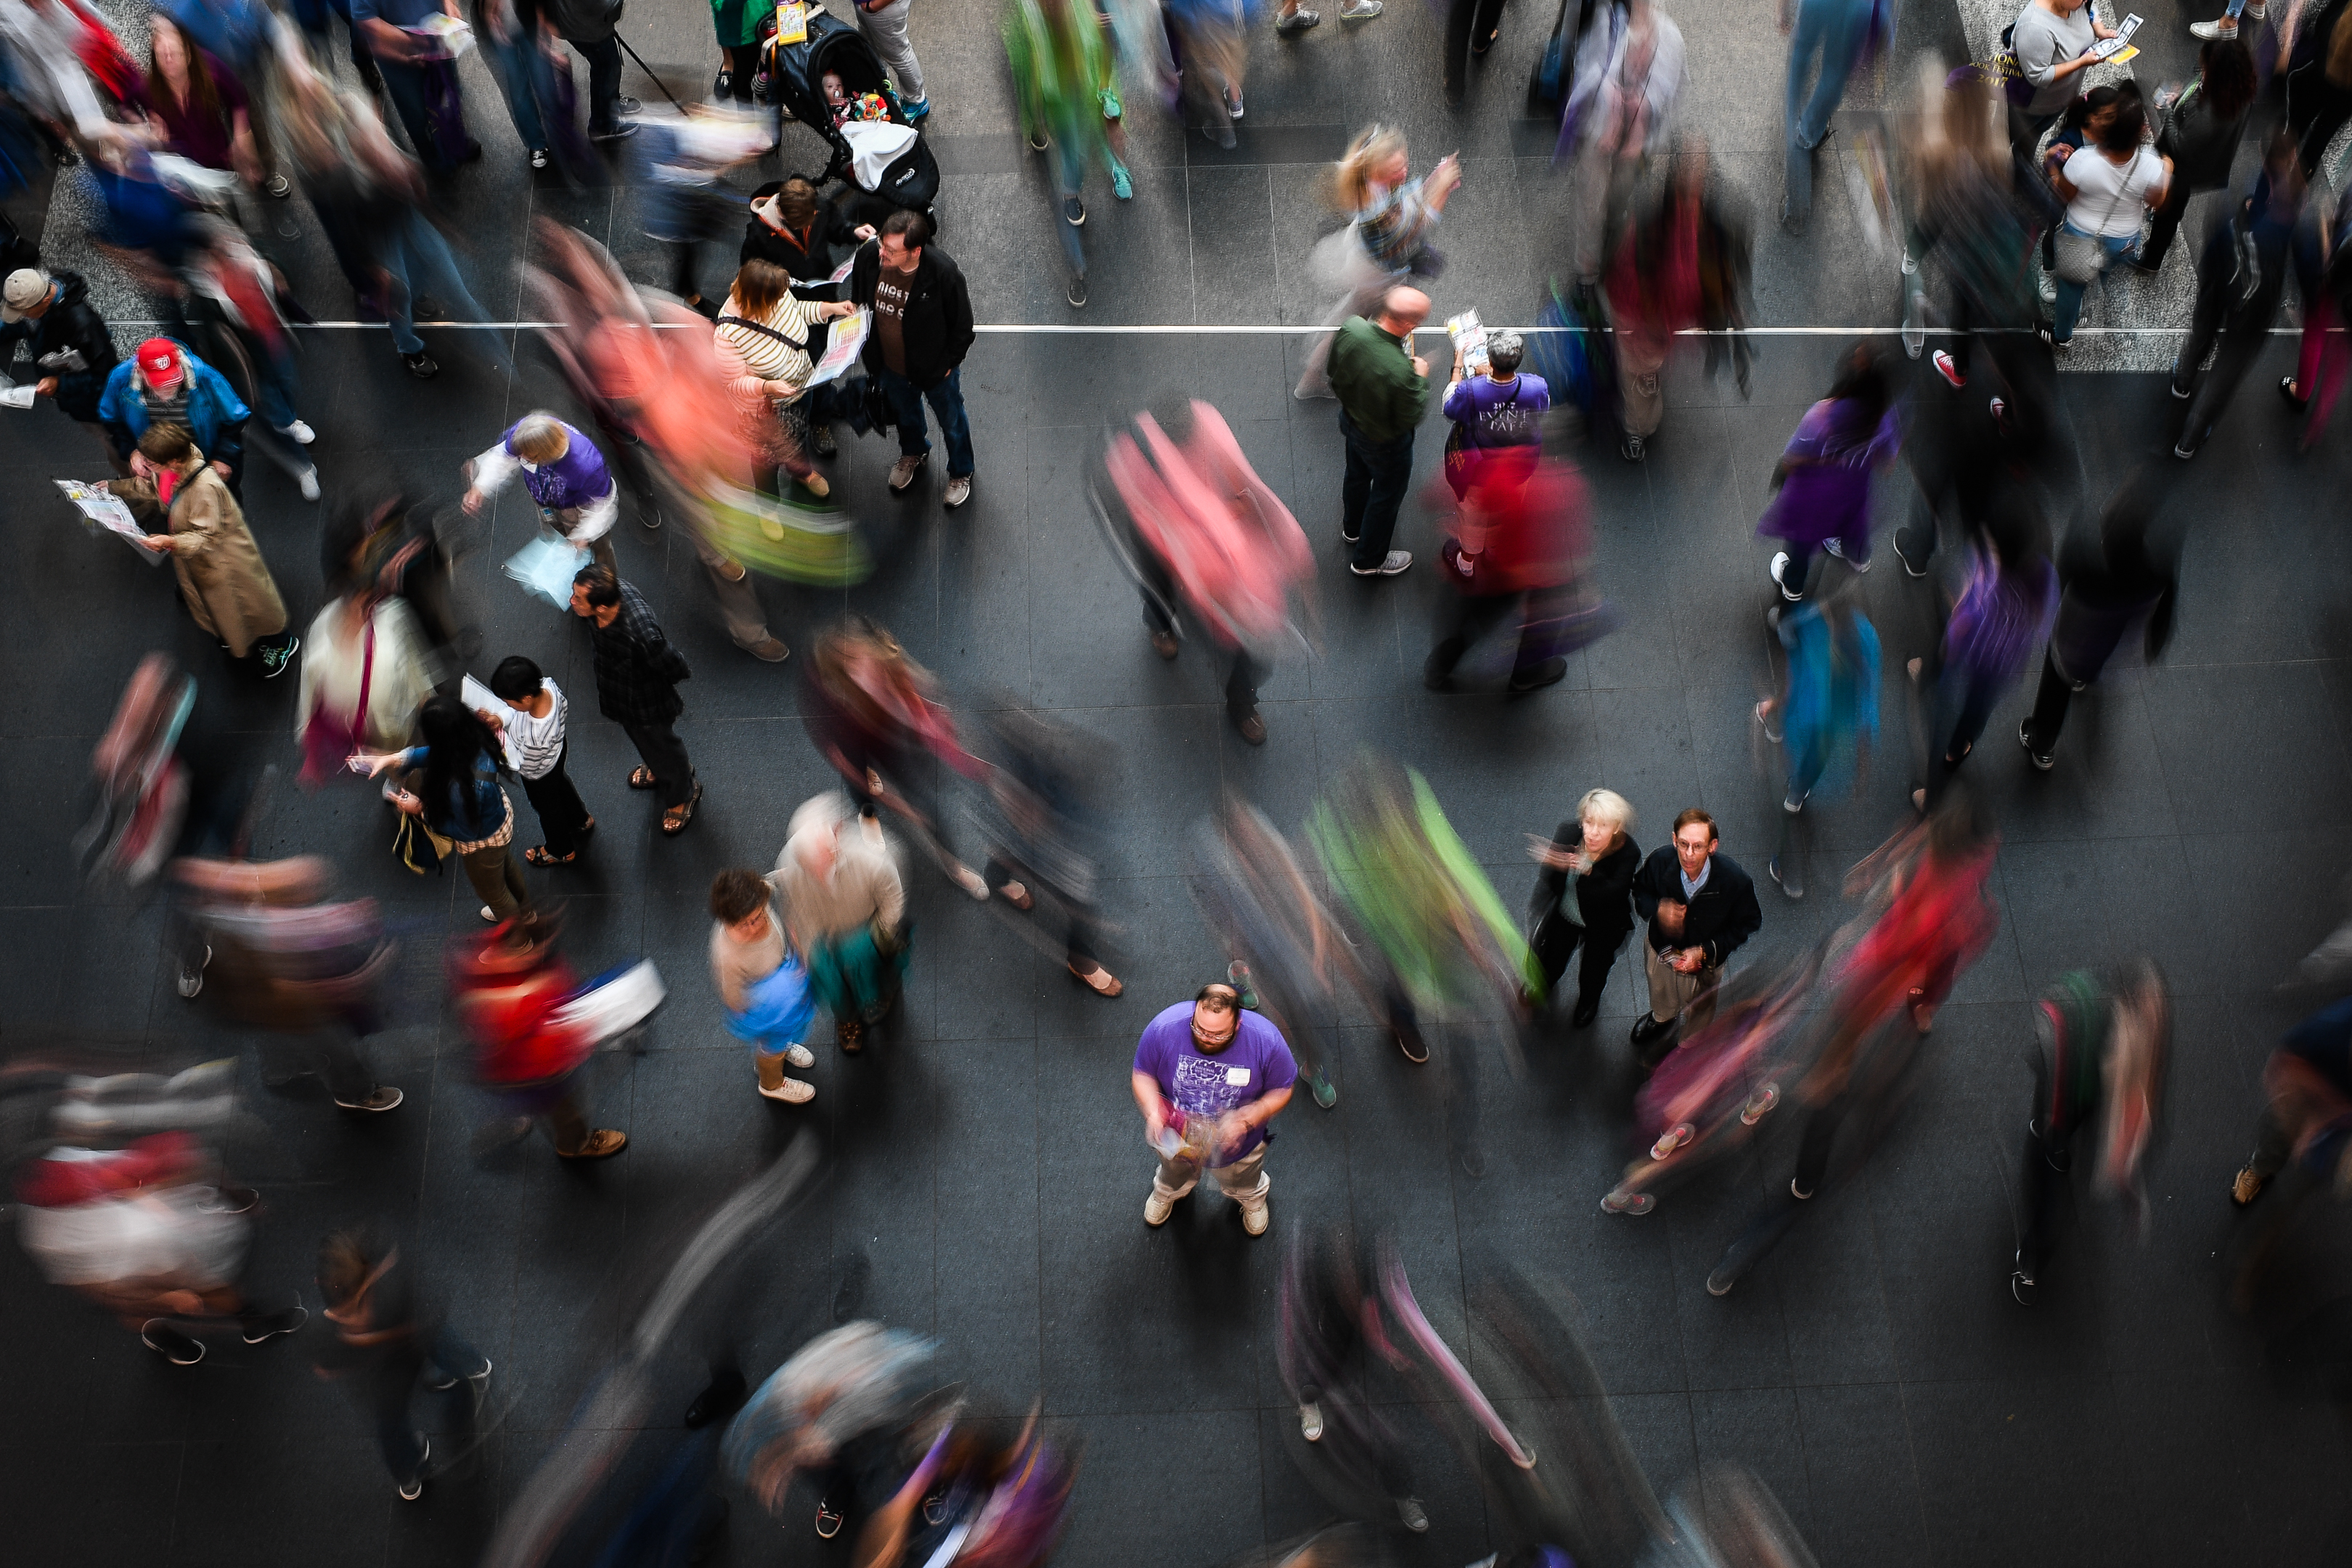 About two dozen people mill about the Walter E. Washington Convention Center at the 2017 National Book Festival. The photos captures some of them in motion.